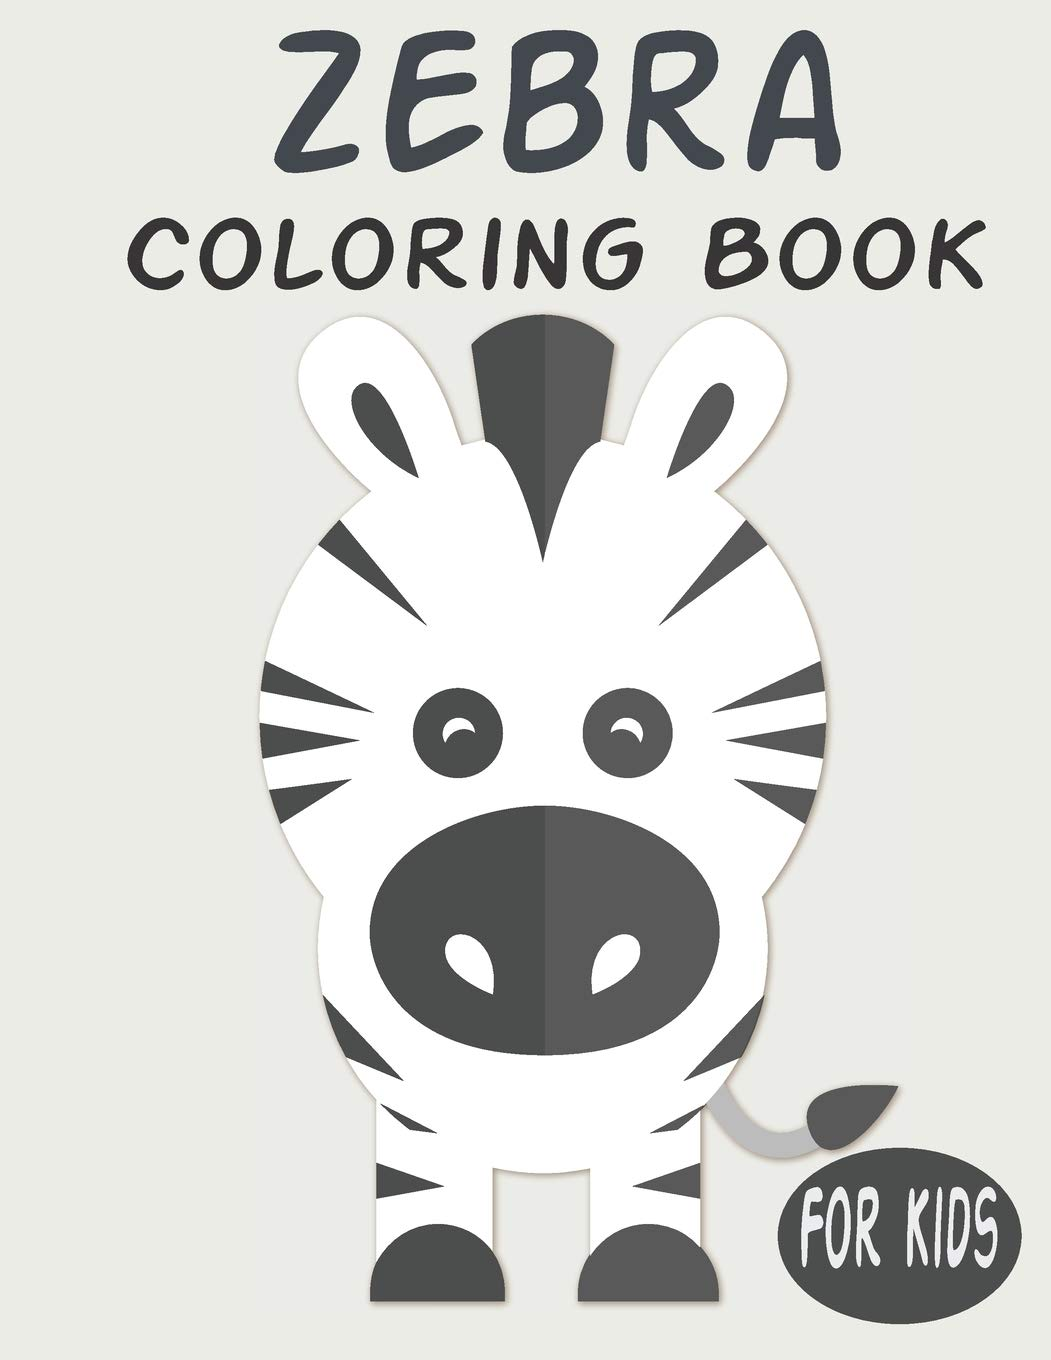 Zebra Coloring Book For Kids Cute Animal Coloring Book Great Gift For Boys Girls Ages 4 8 Publishing Penart 9798603384610 Amazon Com Books